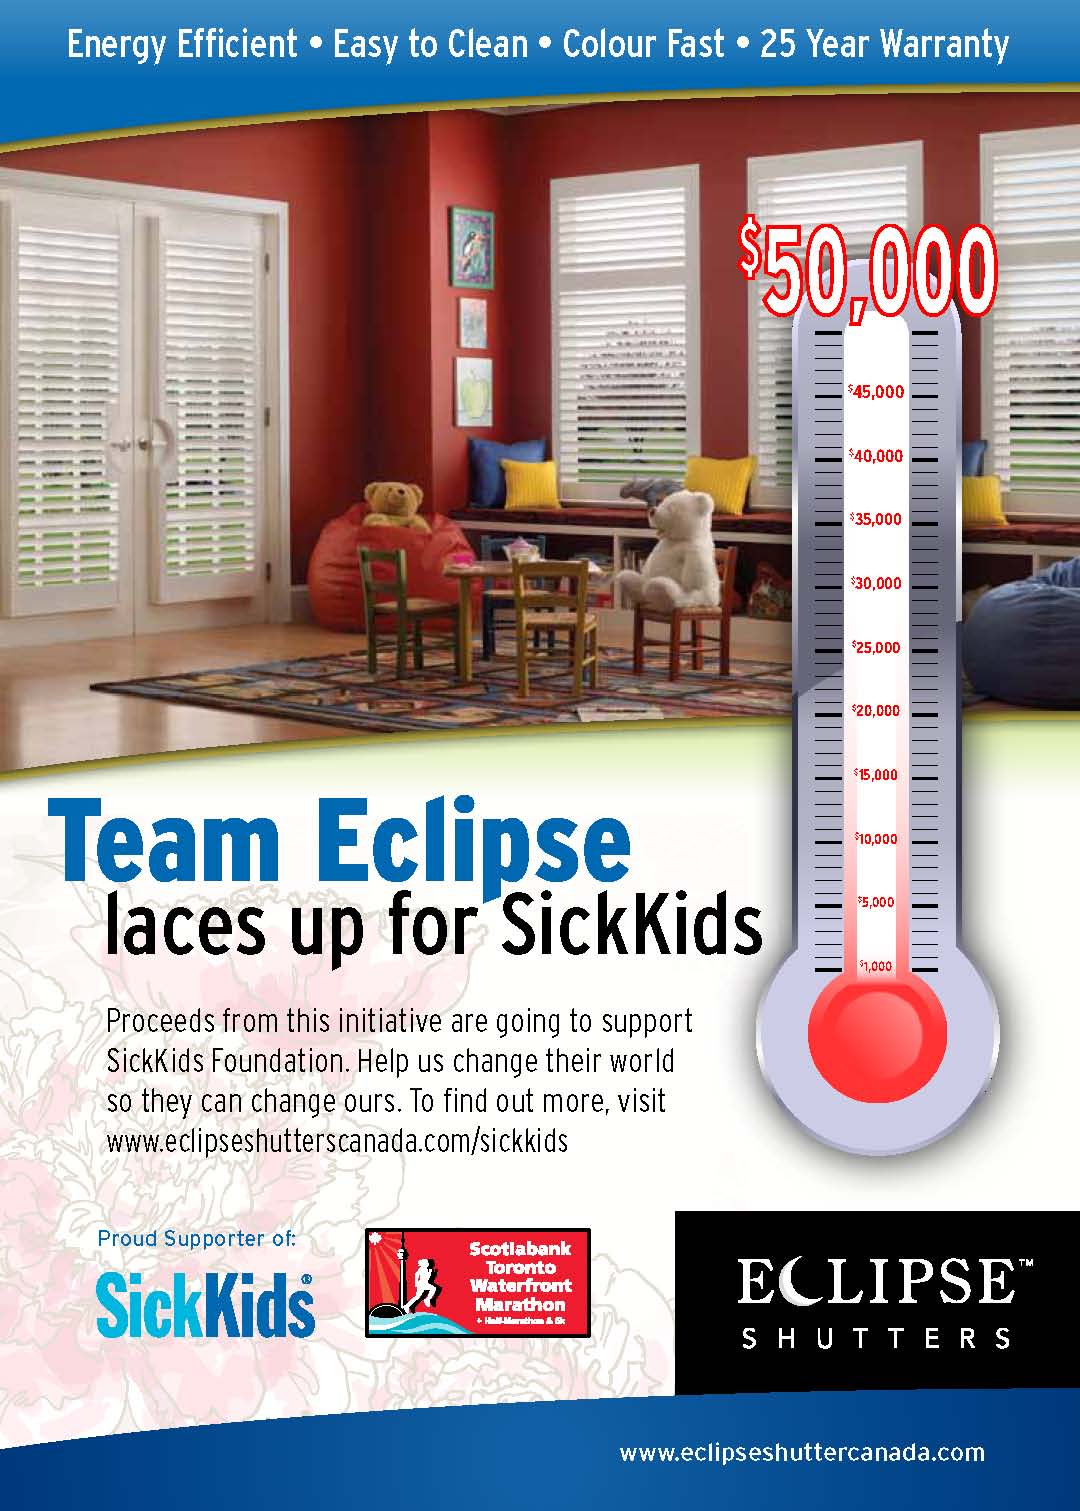 Eclipse Marathon For Sickkidseclipse Shutters Canada Will Be Fundraising For The Sick Kids